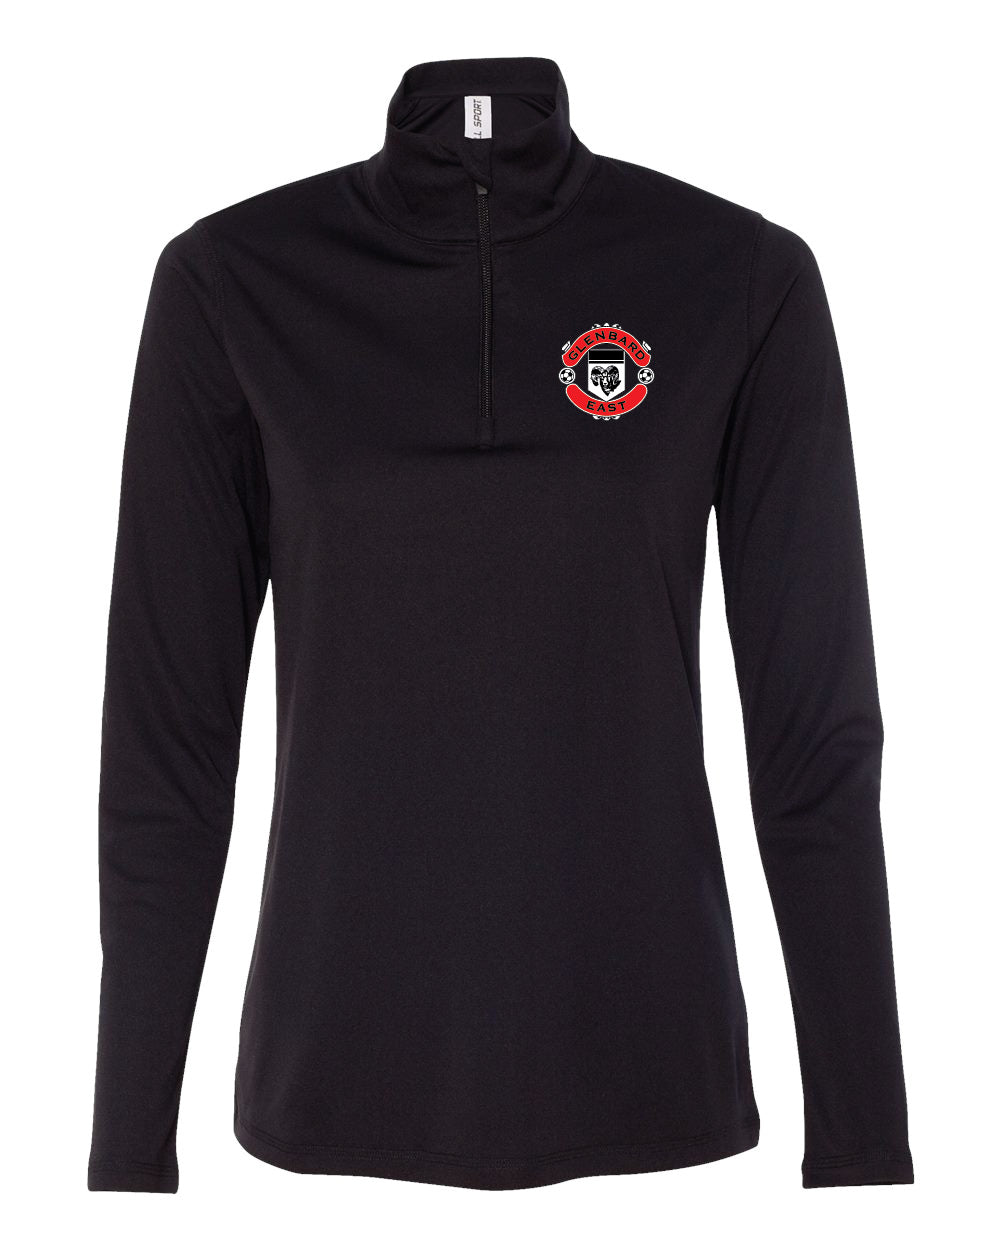 Girls Soccer Quarter Zip Pull over